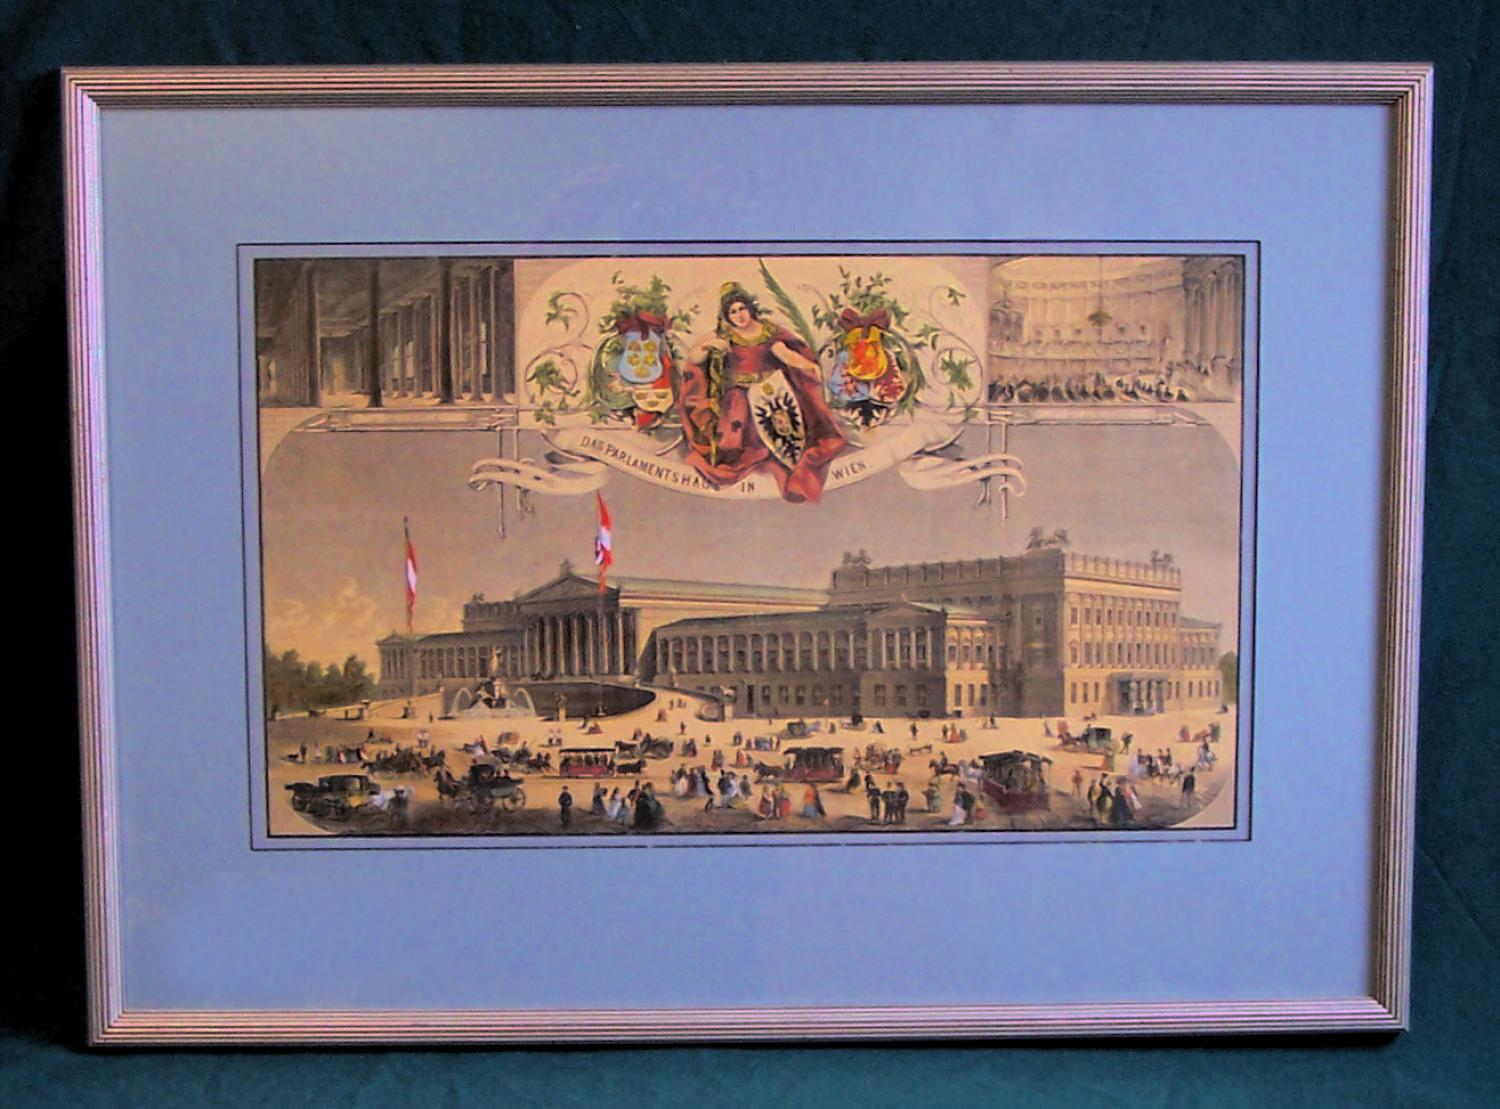 Austrian Parliament Vienna hand colored etching c1870